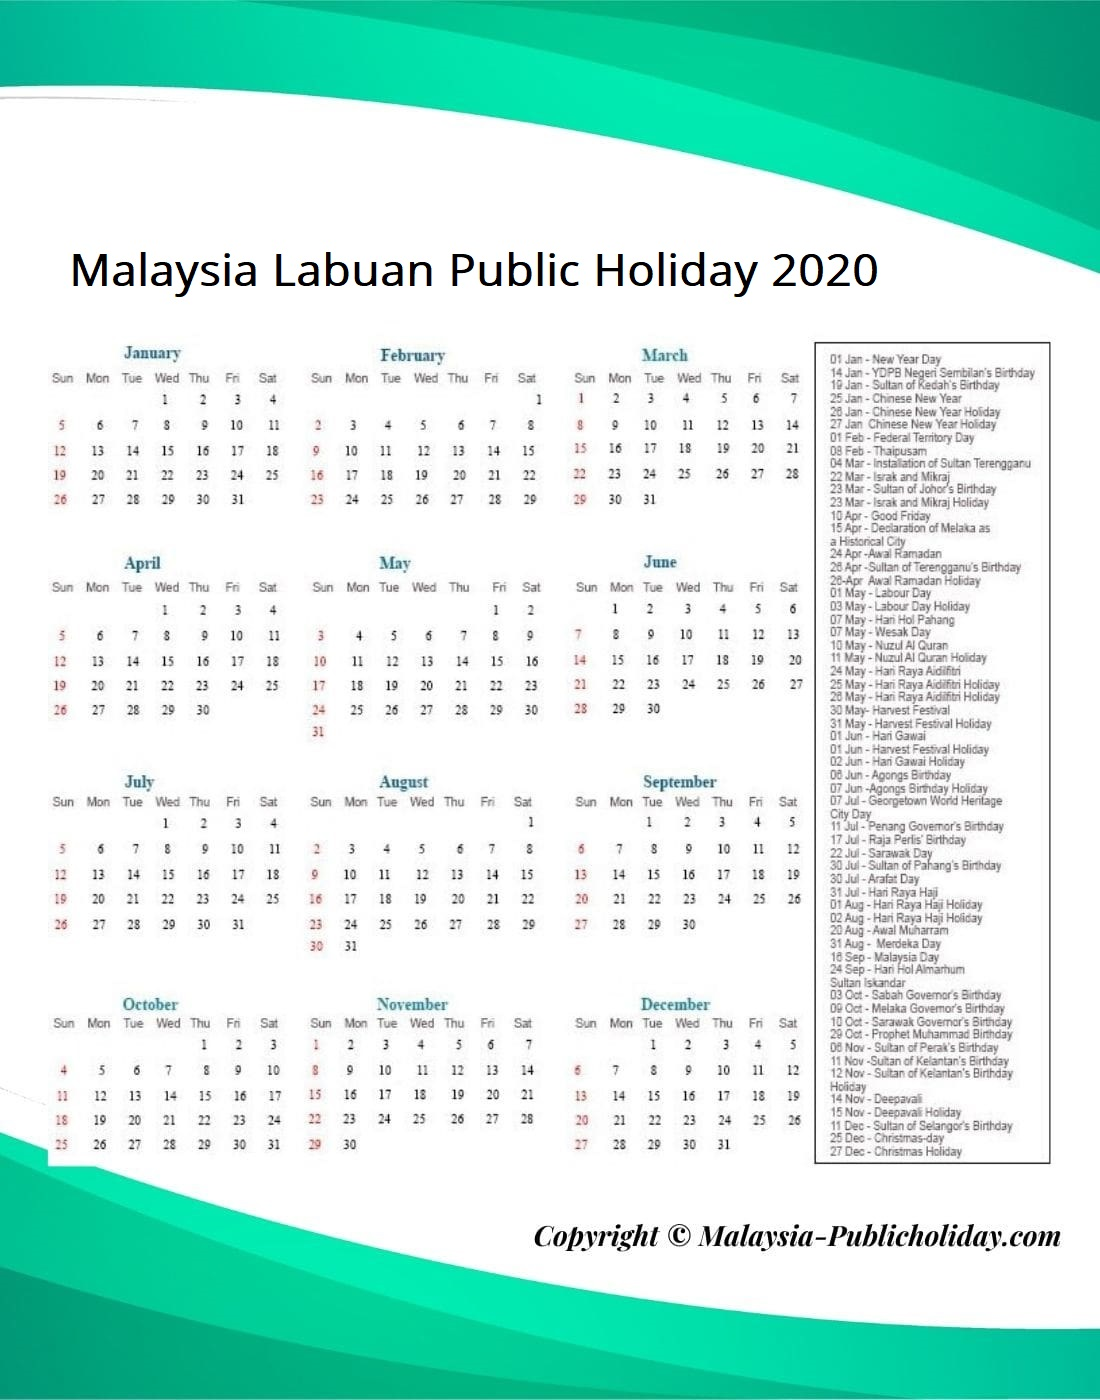 Labuan Public Holiday 2020